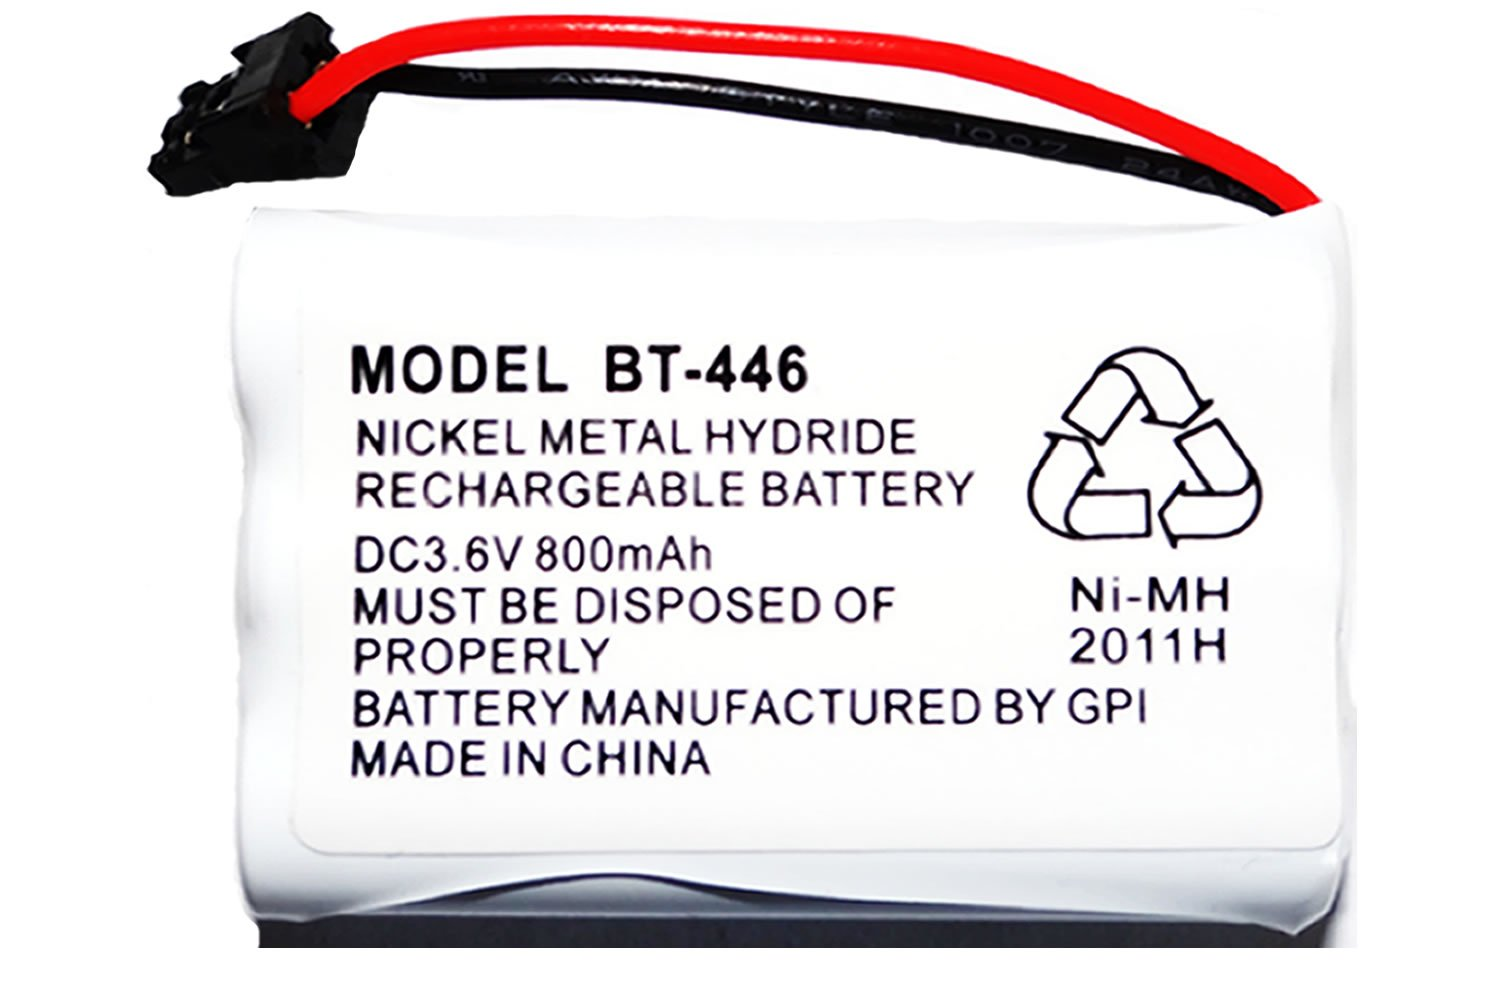 Amazon.com: Rechargeable Replacement Bt-446 Battery for Uniden Cordless  Phone DC 3.6V 800 mAh: Office Products